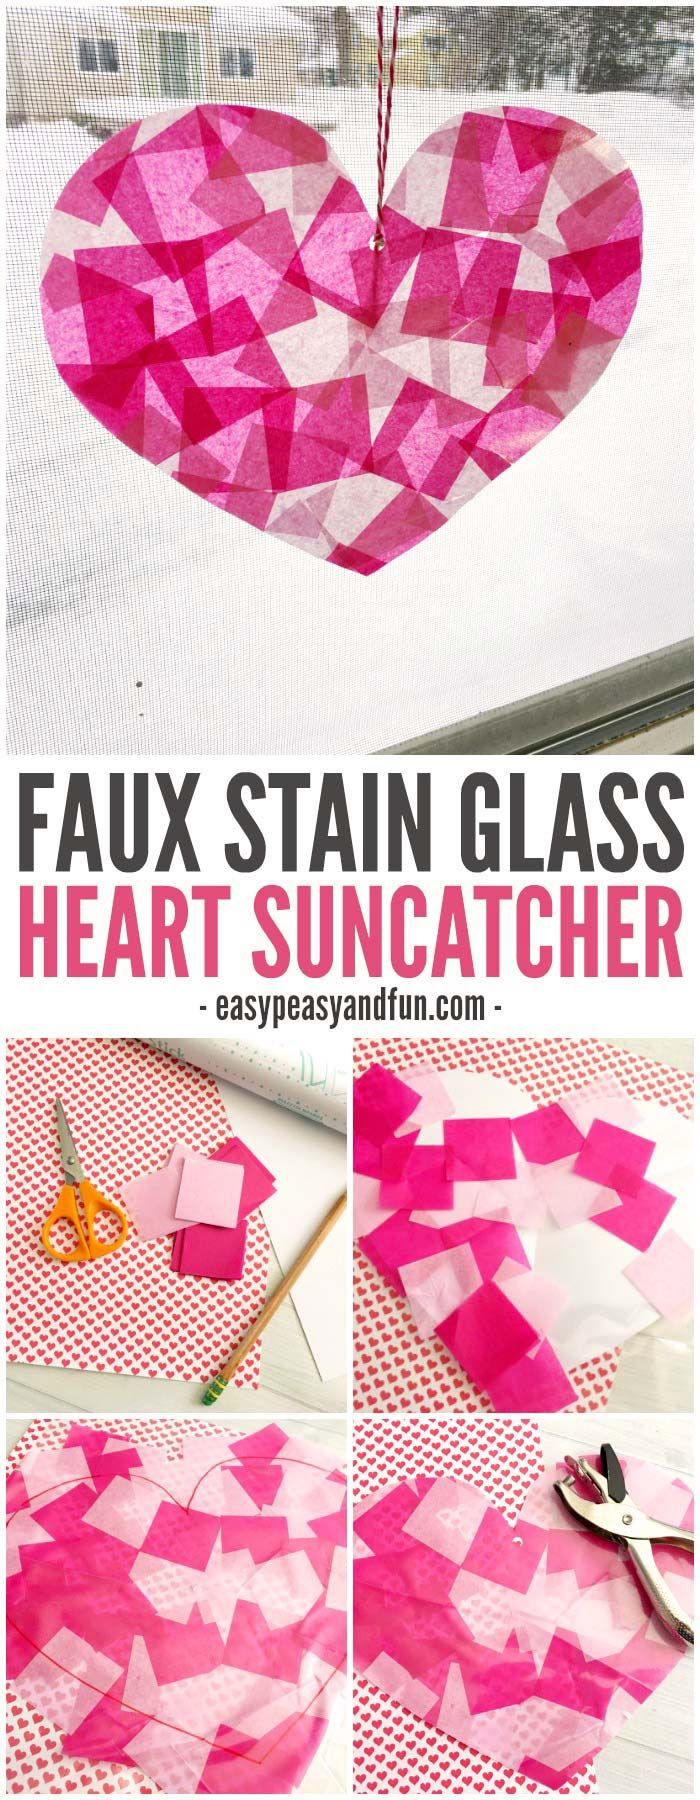 Make these faux stain glass heart suncatchers this February! A great craft to work on scissor skills!